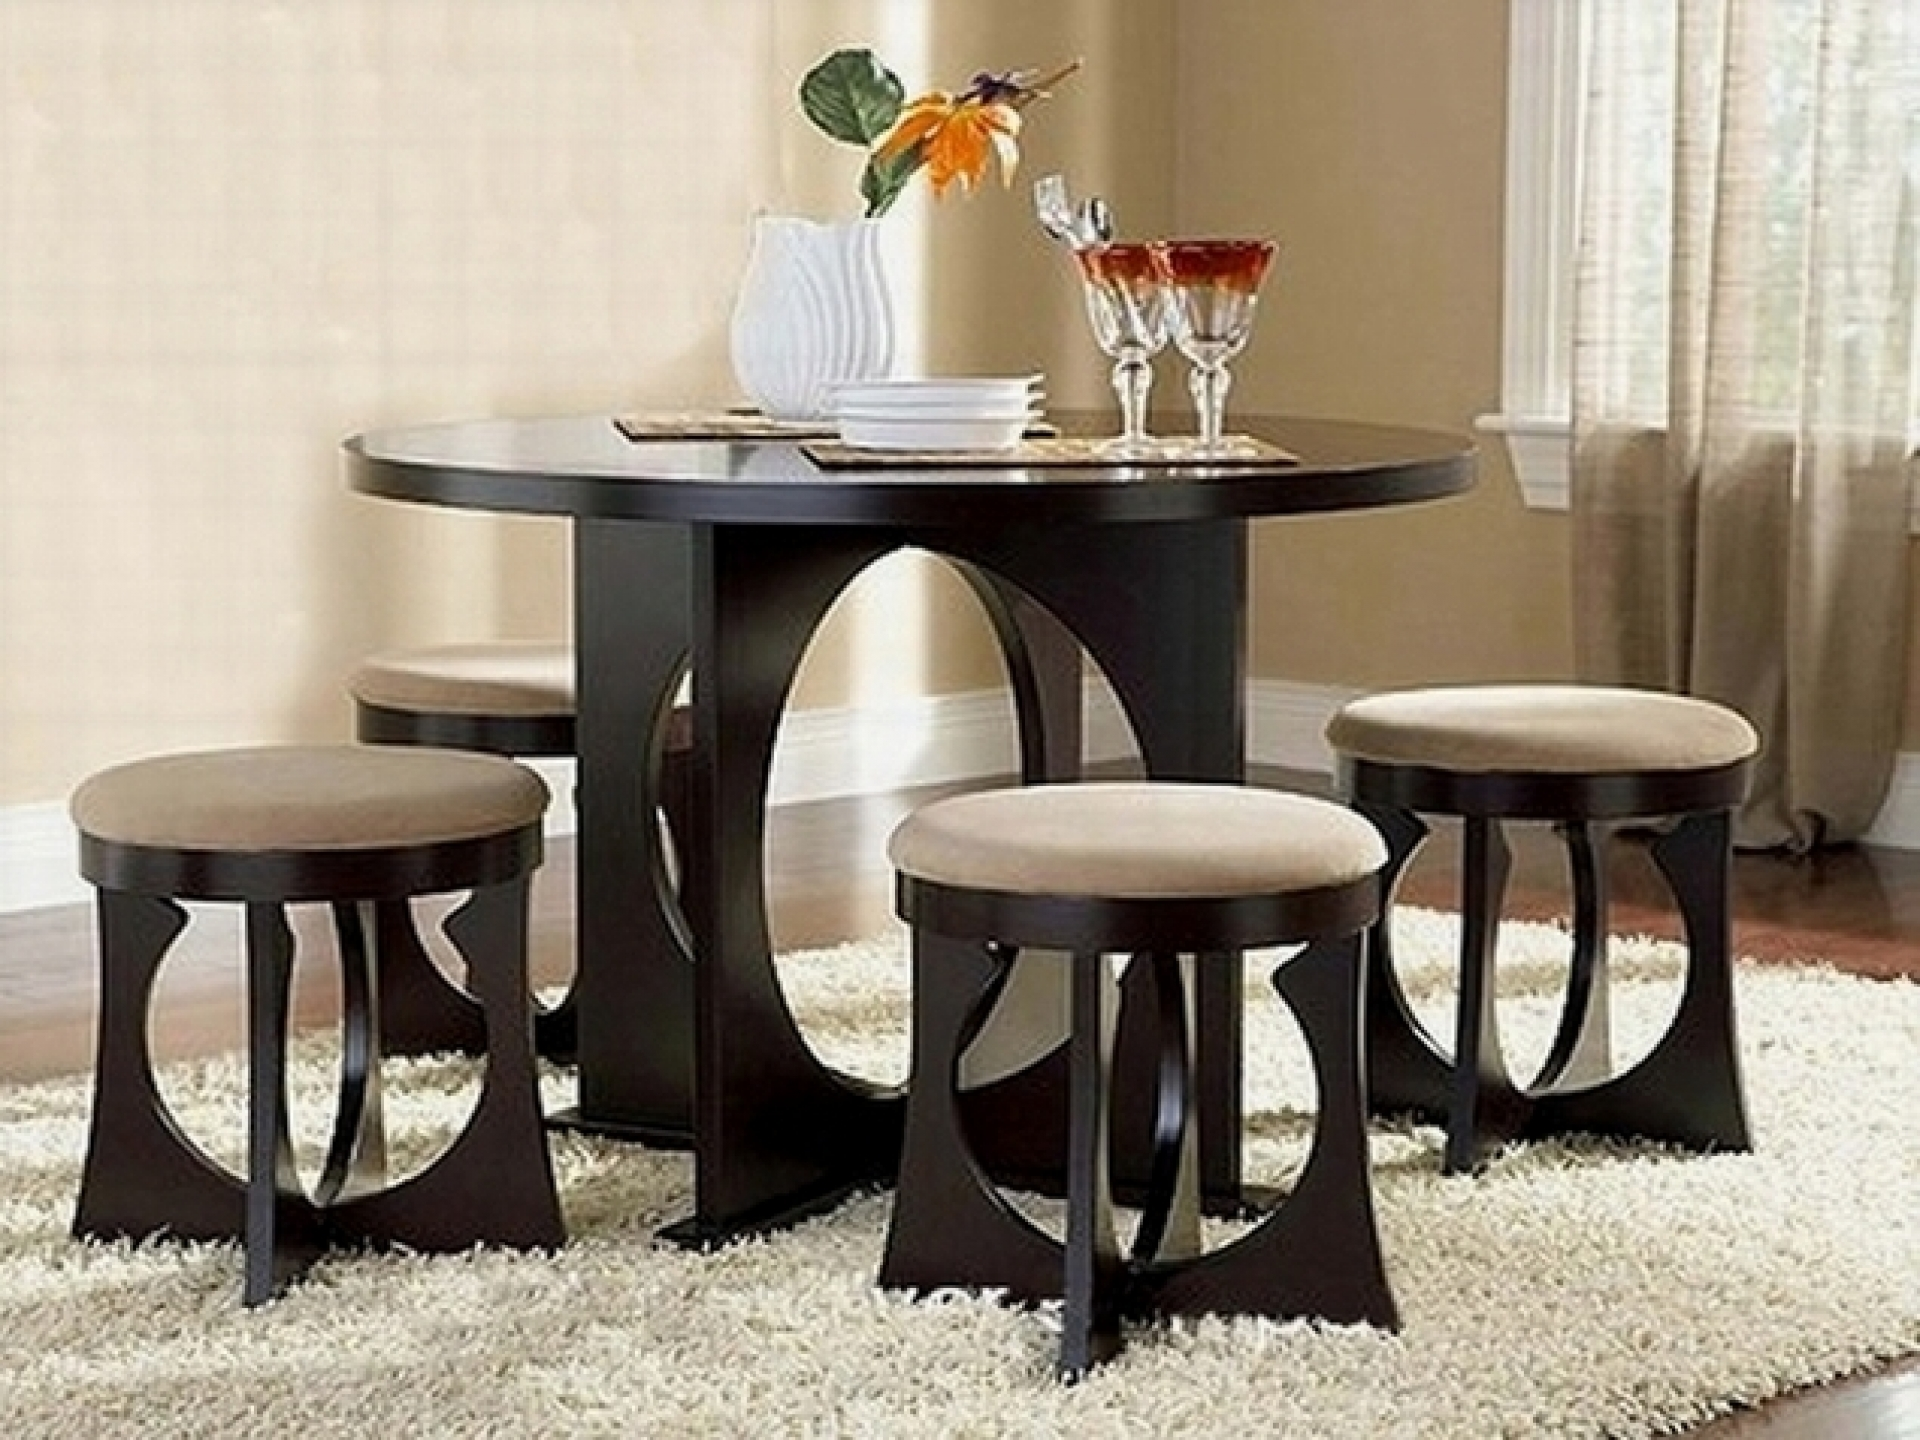 Dining Table And Chairs For Small Rooms Compact Dining Table With Chairs  Small Black Dining Table And Chairs